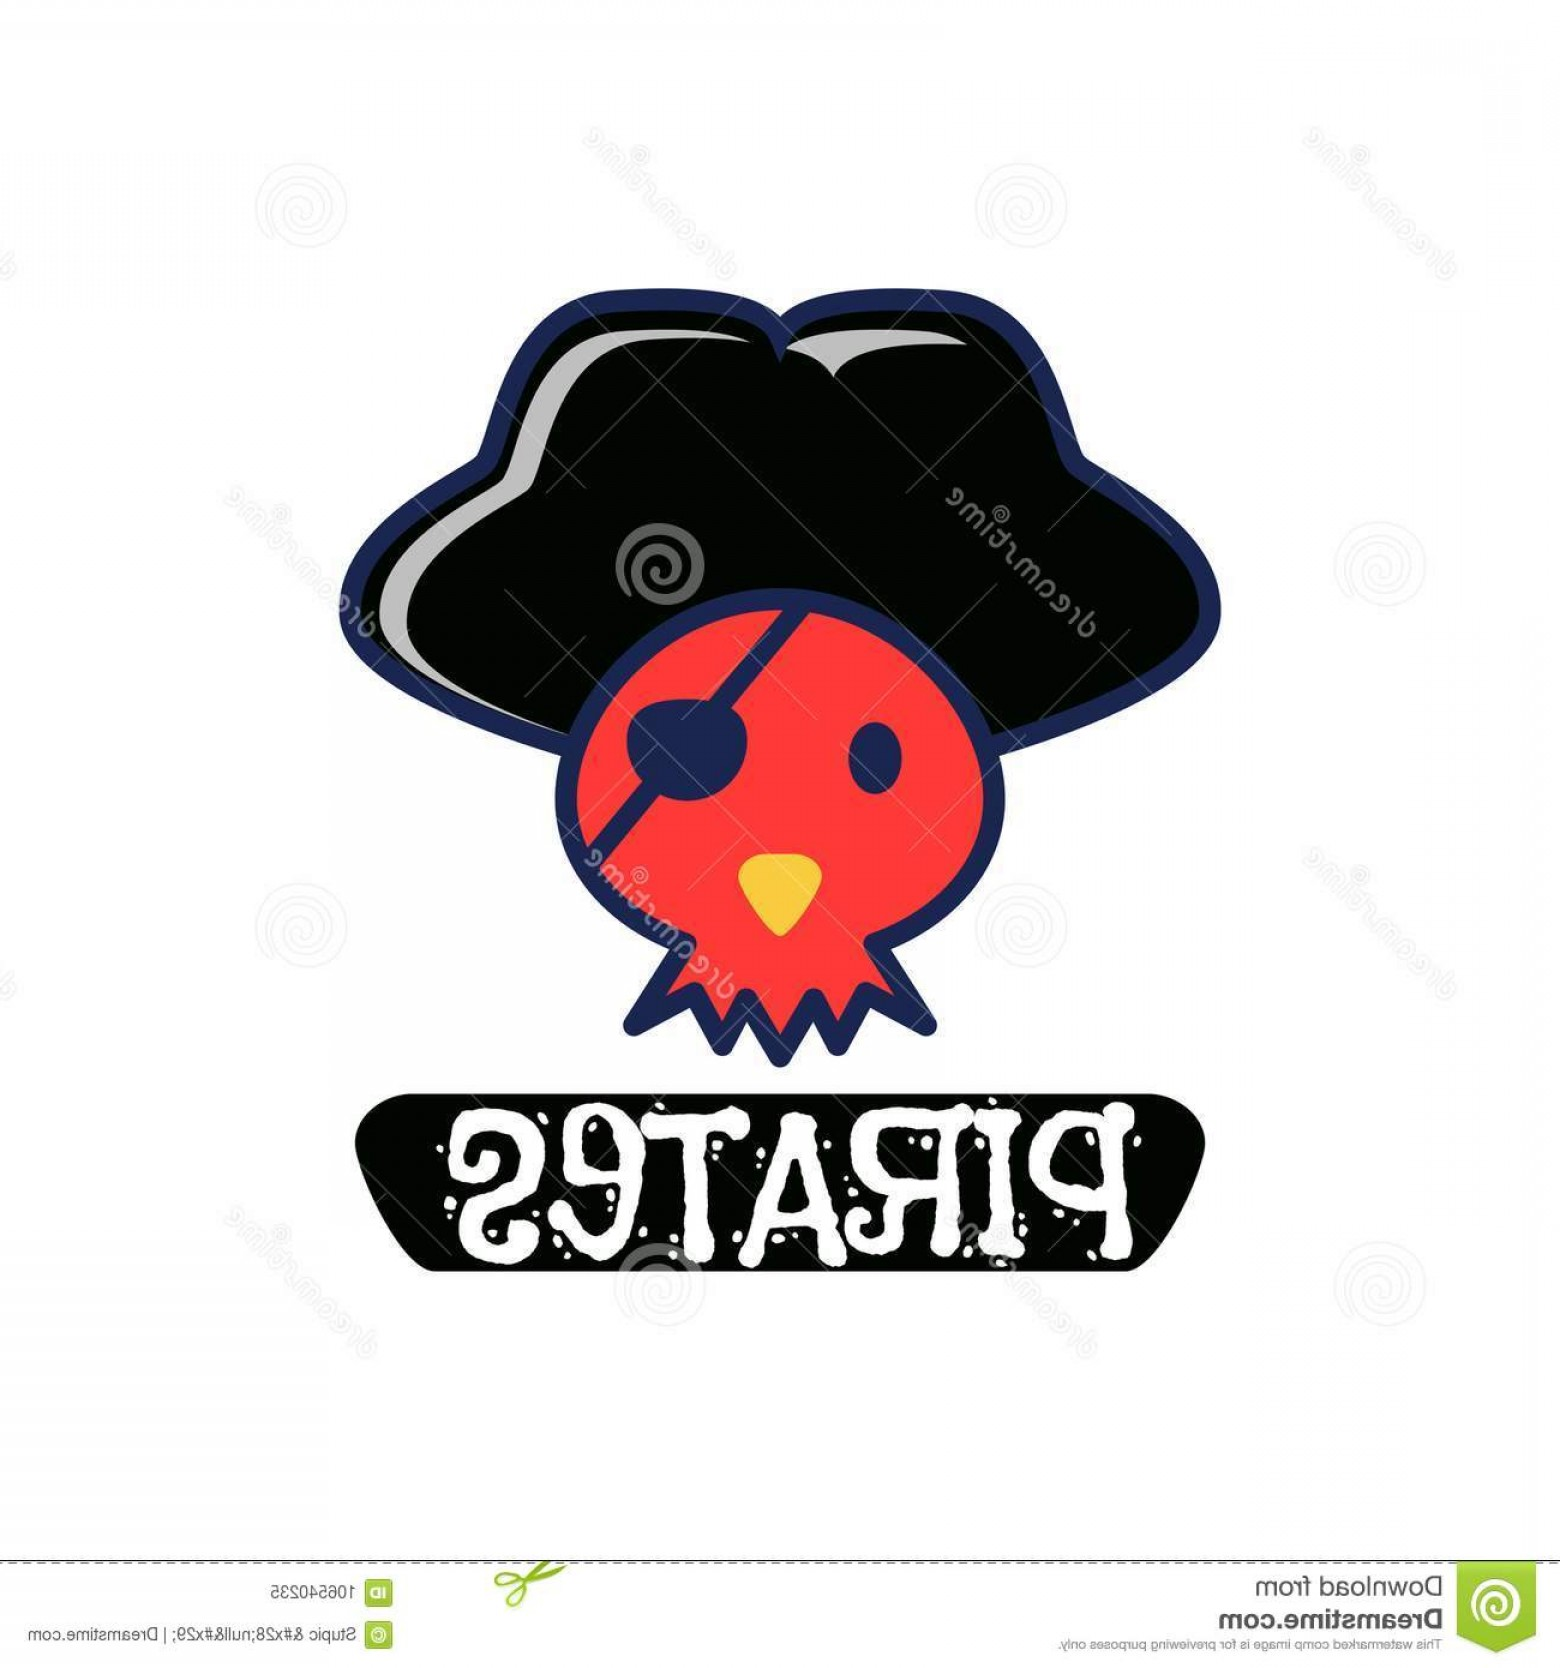 Turkey Logo Vector Art: Simple Unique Pirates Logo Various Purposes Best Use Vector Art Template Illustration Image